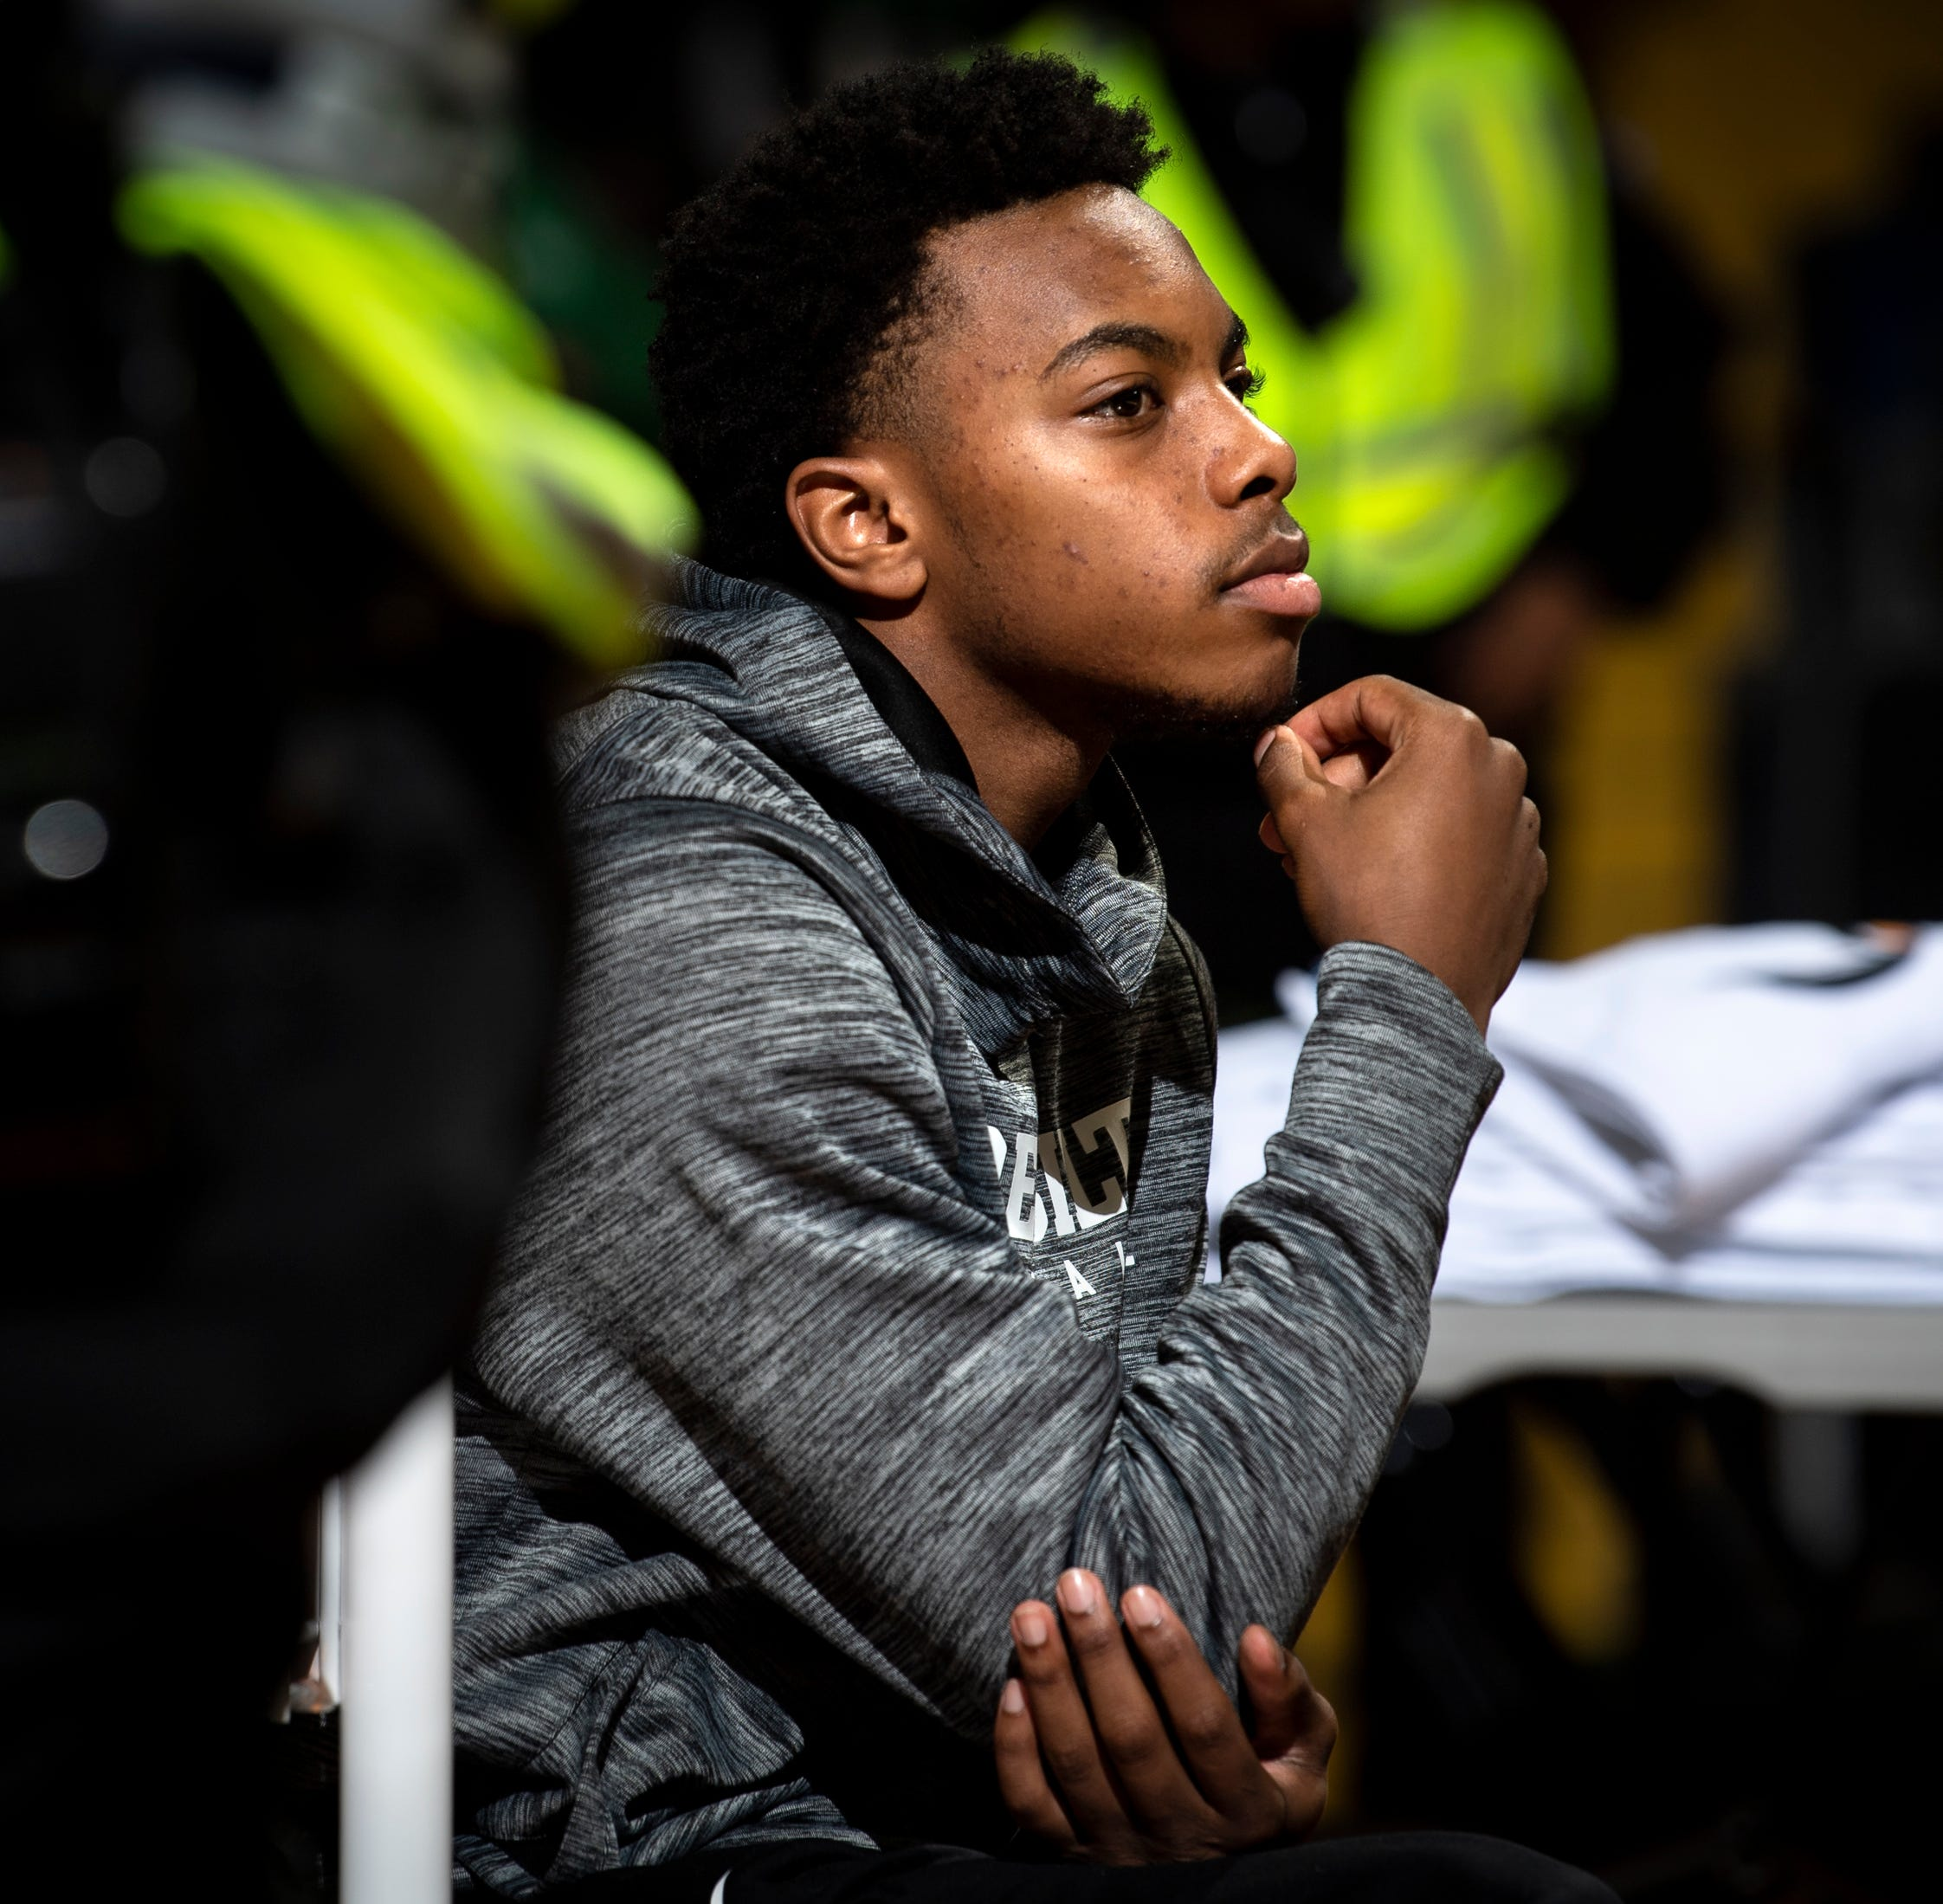 Vanderbilt basketball still under cloud of Darius Garland's injury: 'No excuse, but it's reality'